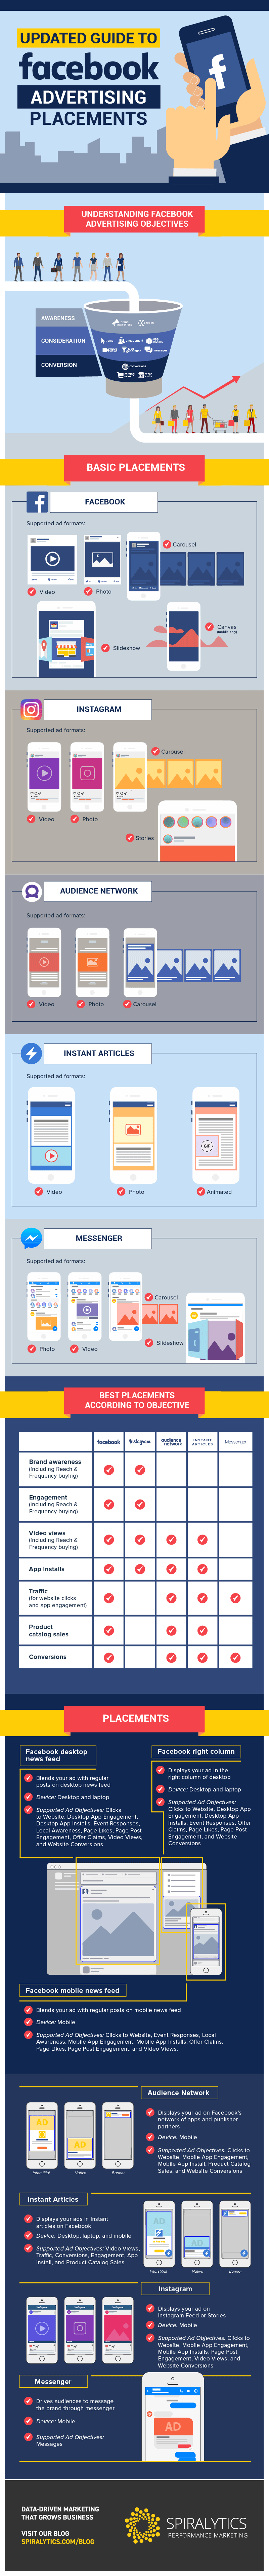 Want to place Facebook ads that perform? Find the latest tips on how to place Facebook ads effectively on this handy infographic. Save money and time!